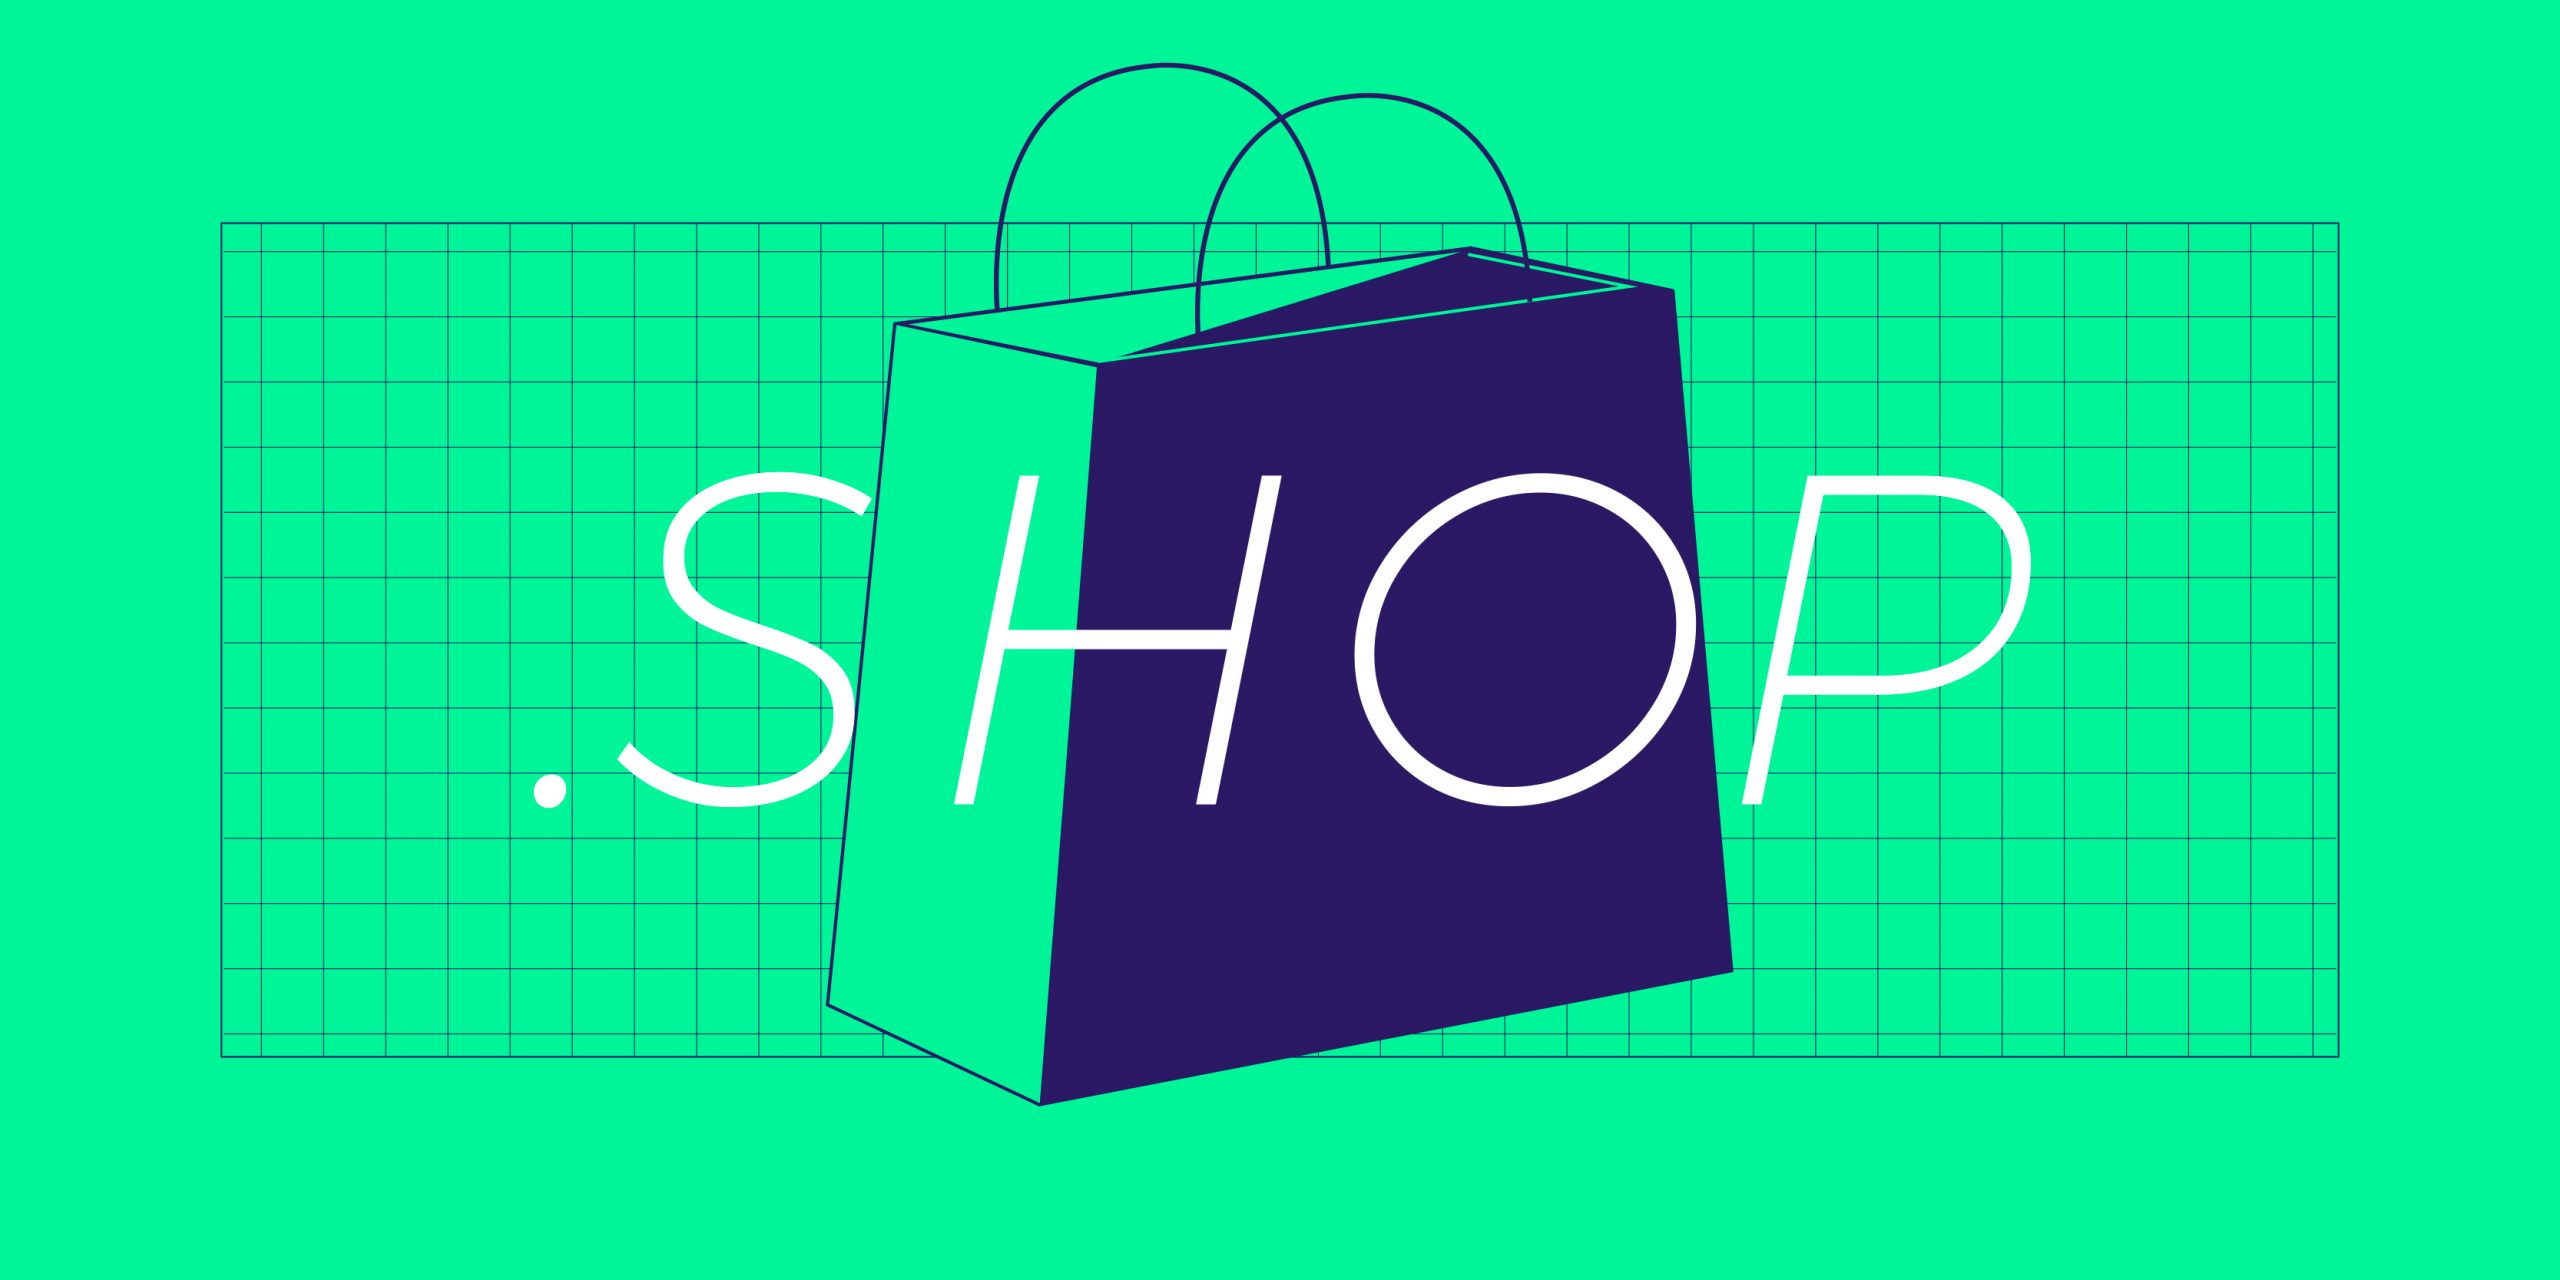 All this year, .shop is on sale